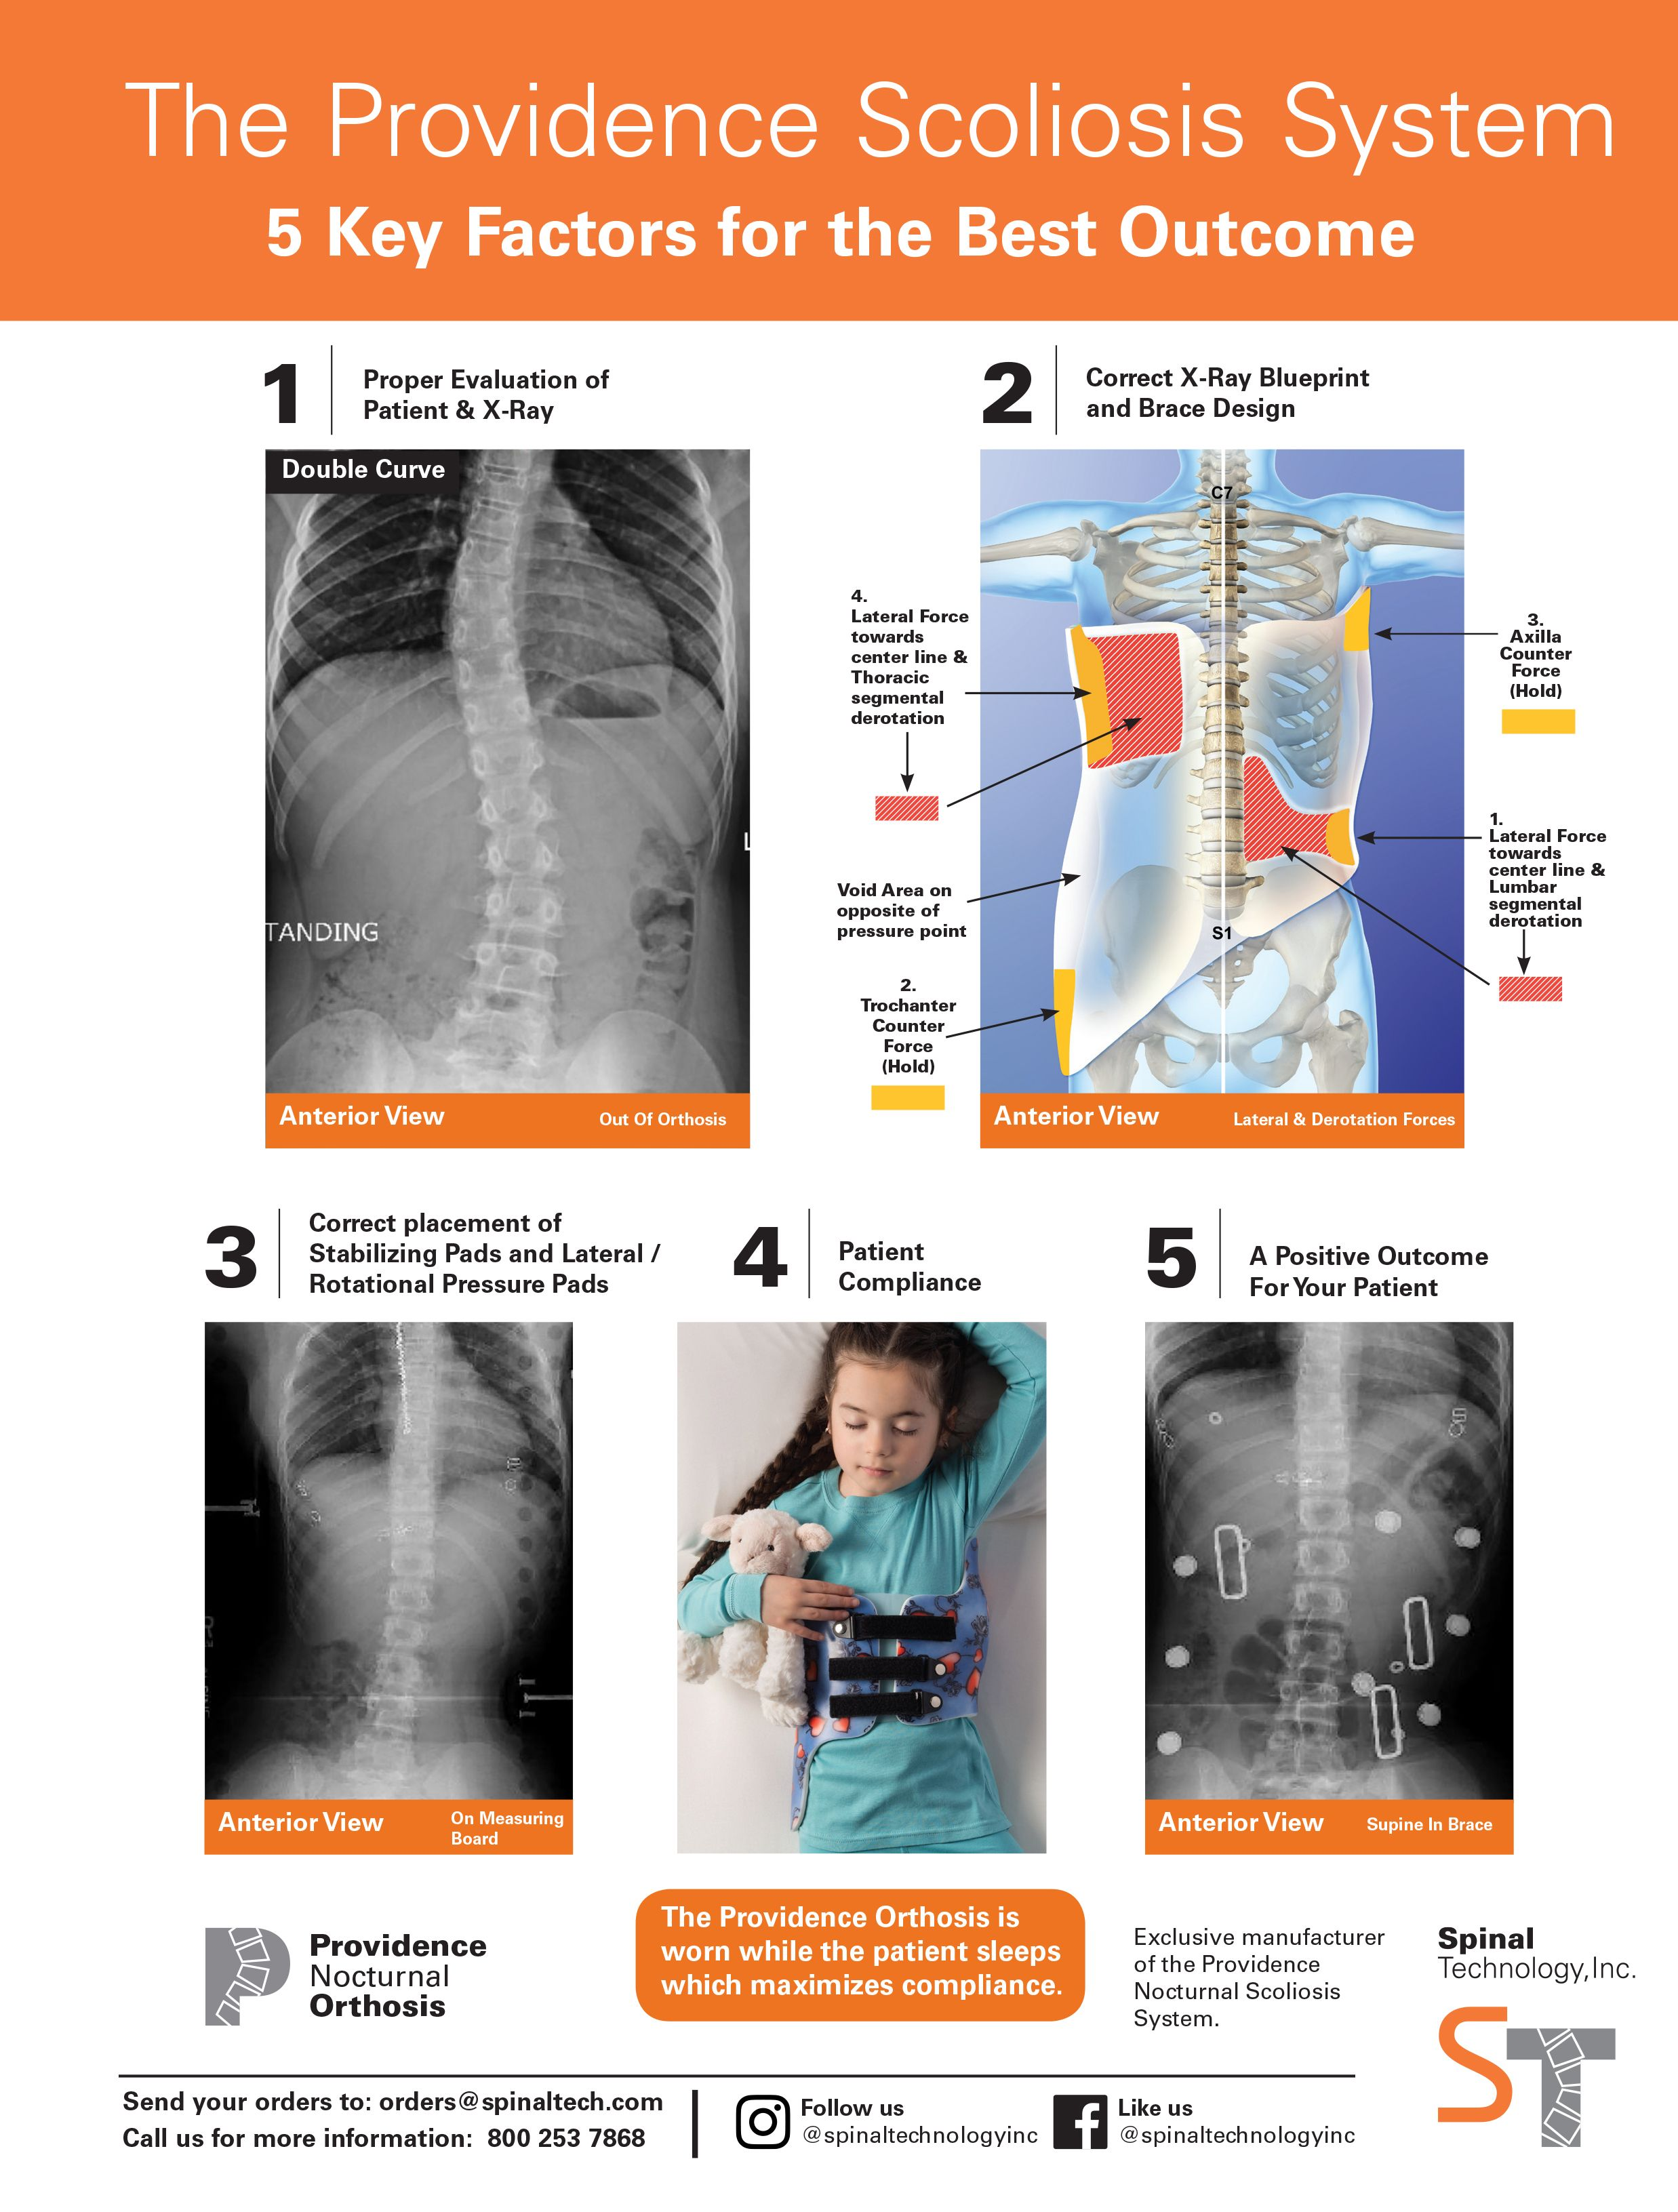 Spinal Tech ad by plymouth ma photographer heidi harting